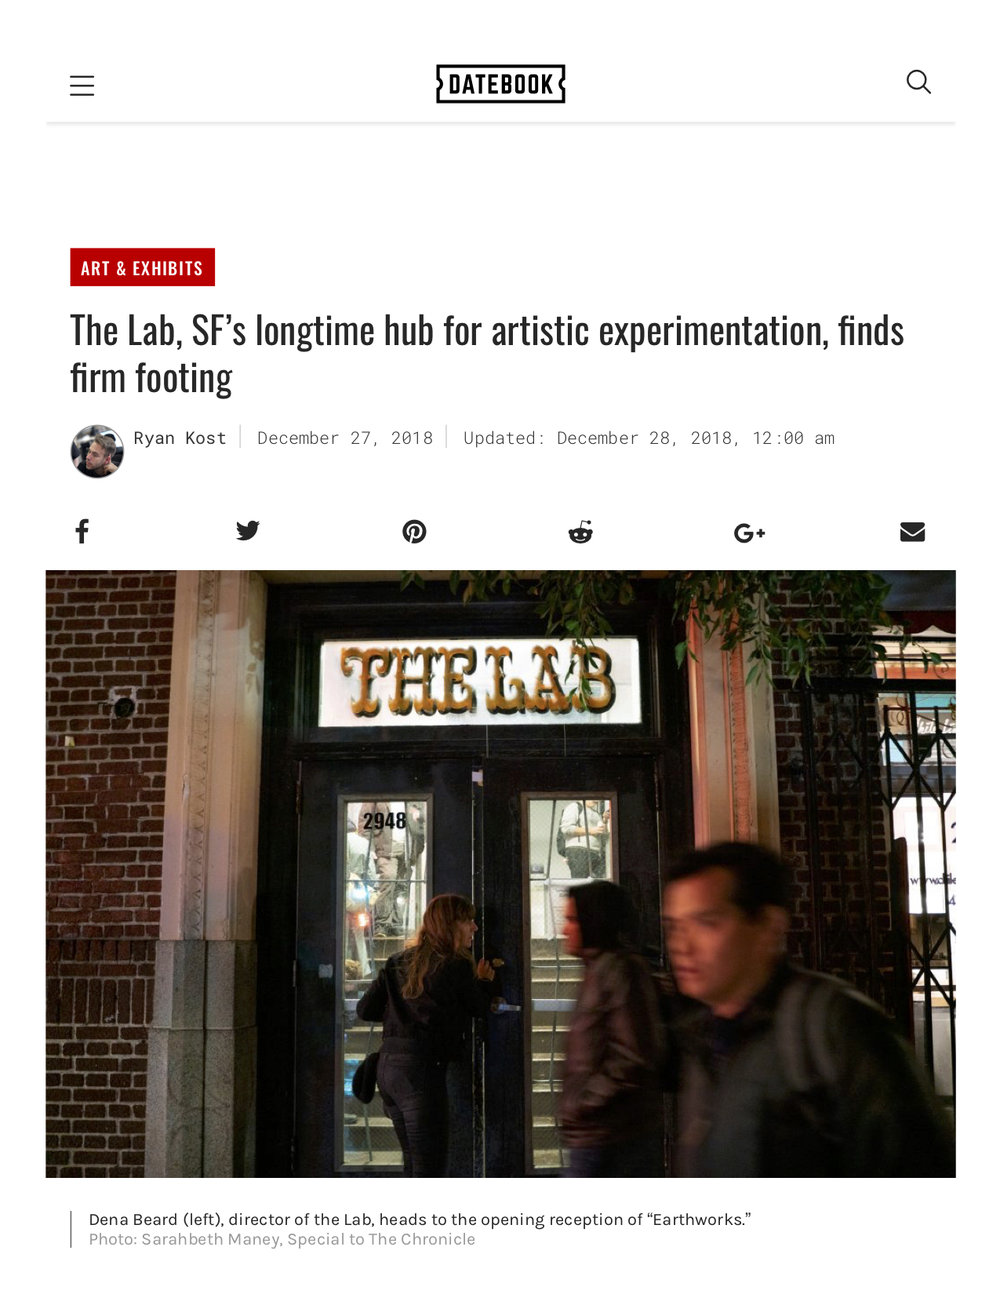 The Lab, SF's longtime hub for artistic experimentation, finds firm footing _ Datebook 1.jpg